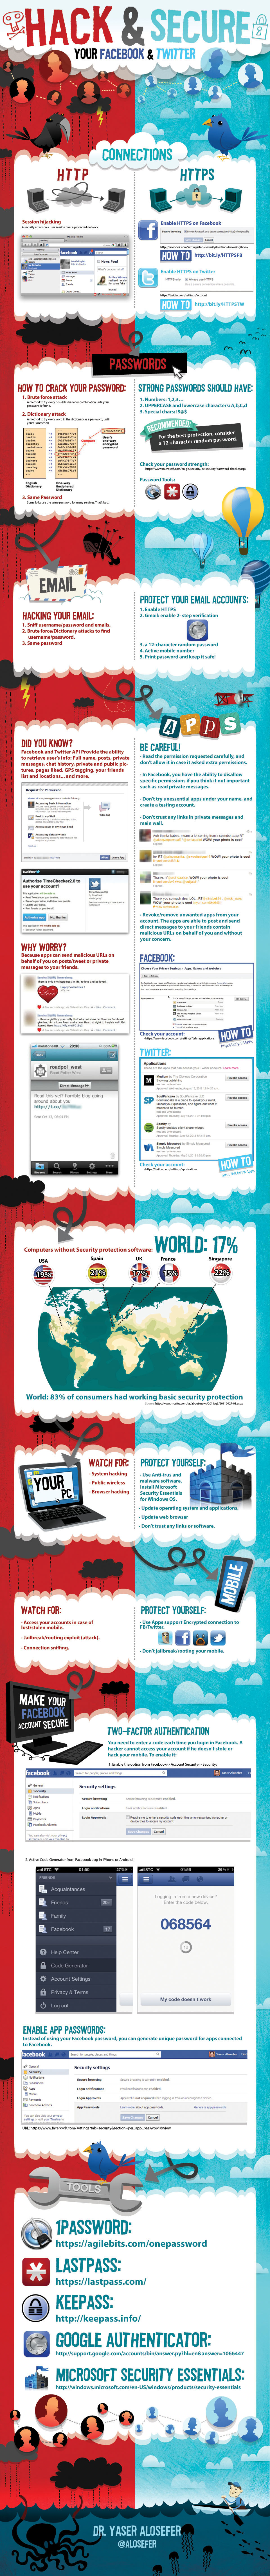 Facebook Twitter Privacy Protection-Infographic